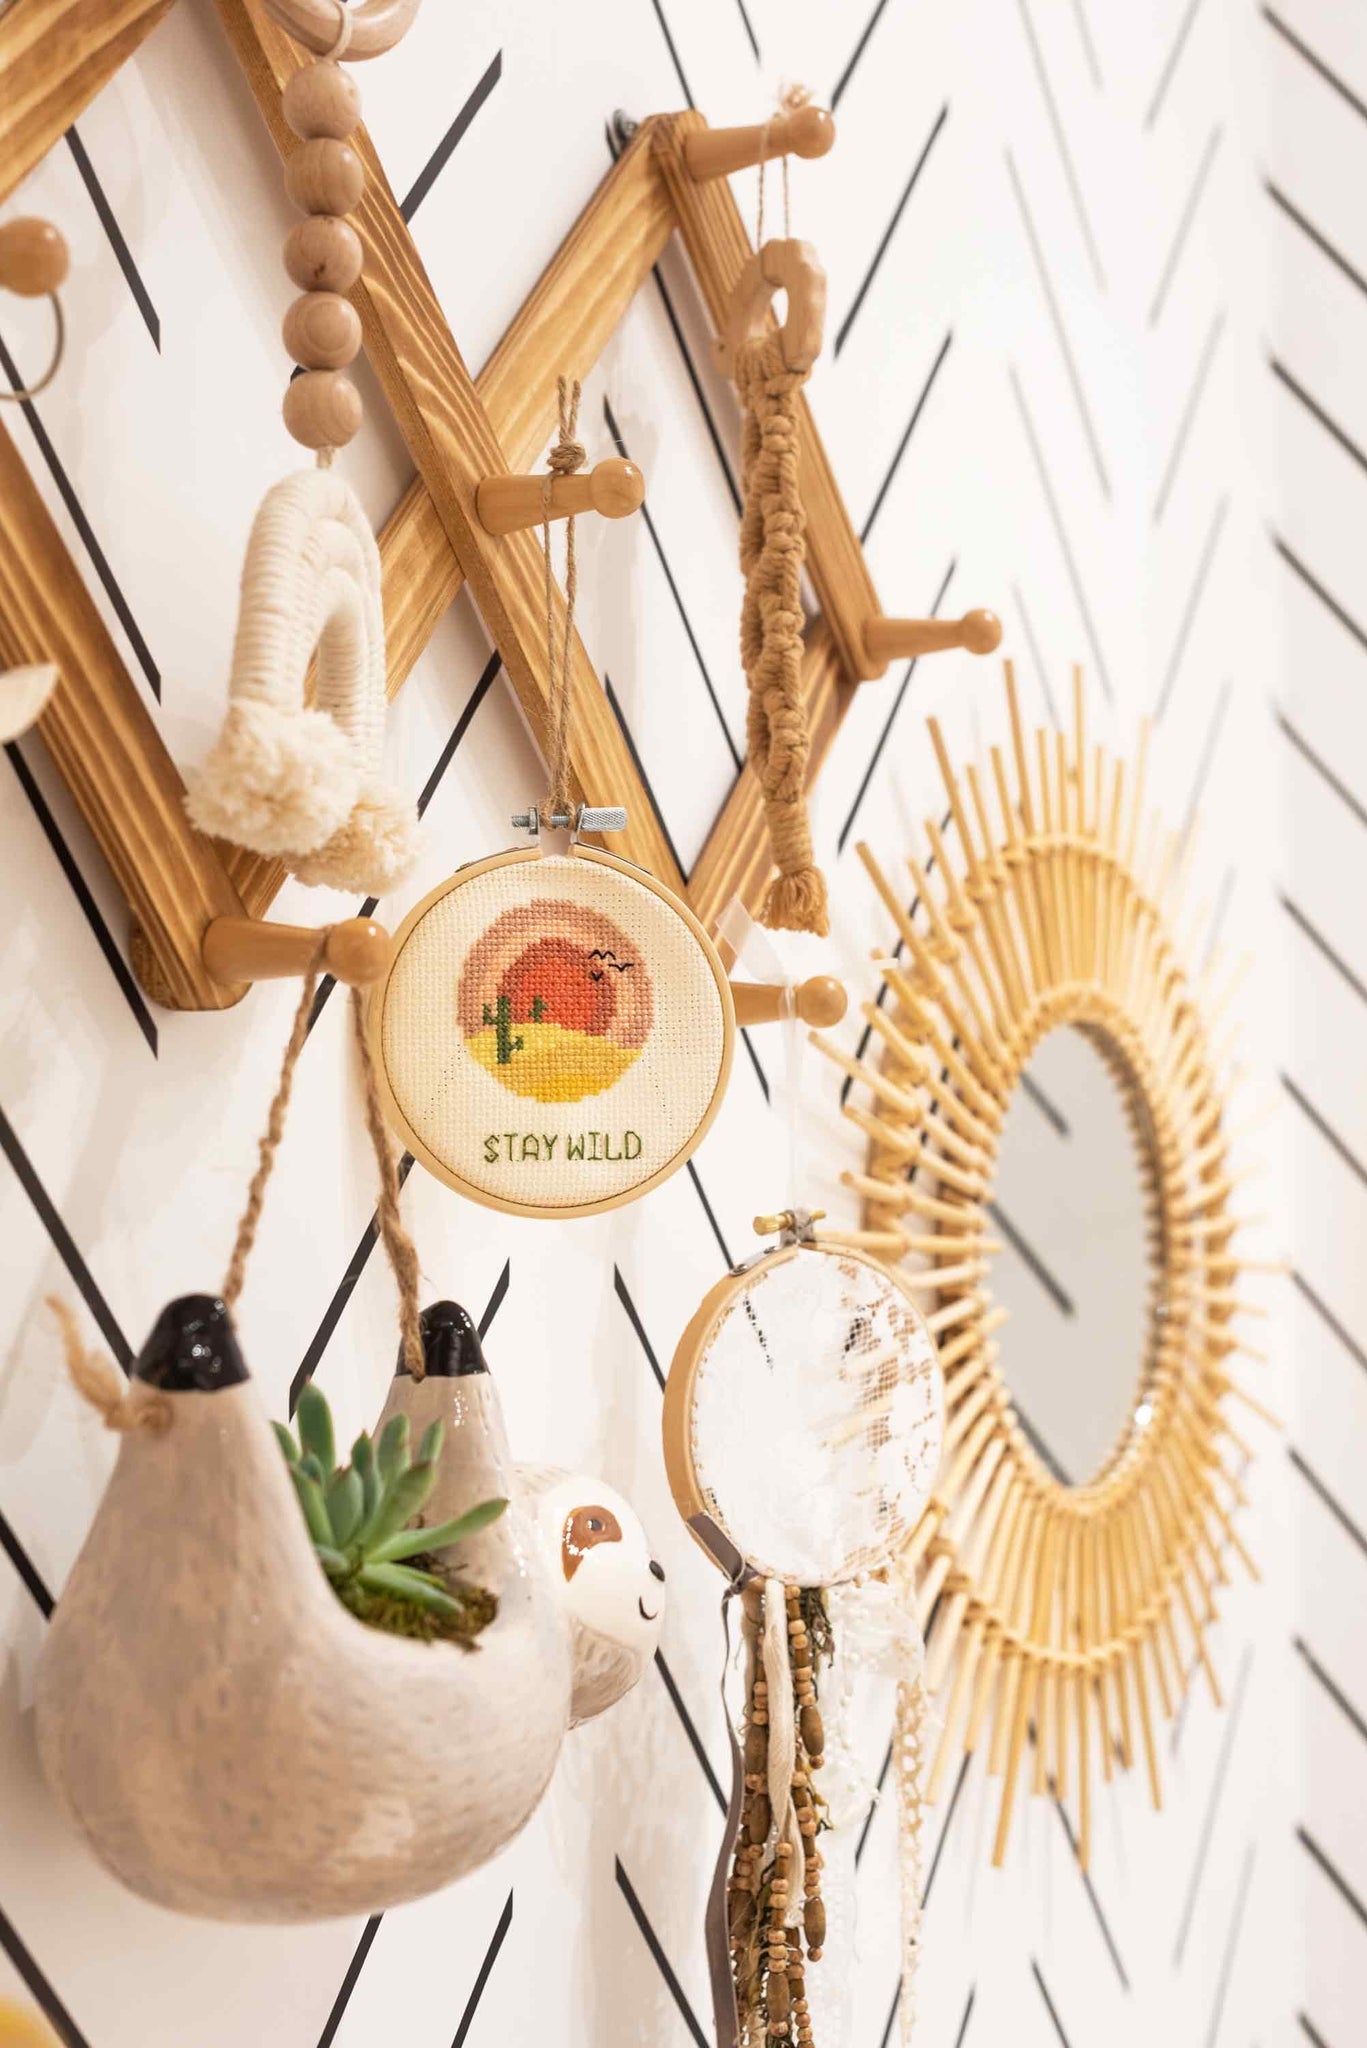 Hanging clothing rack in nursery interior with baby sloth planter and rainbow theme decor